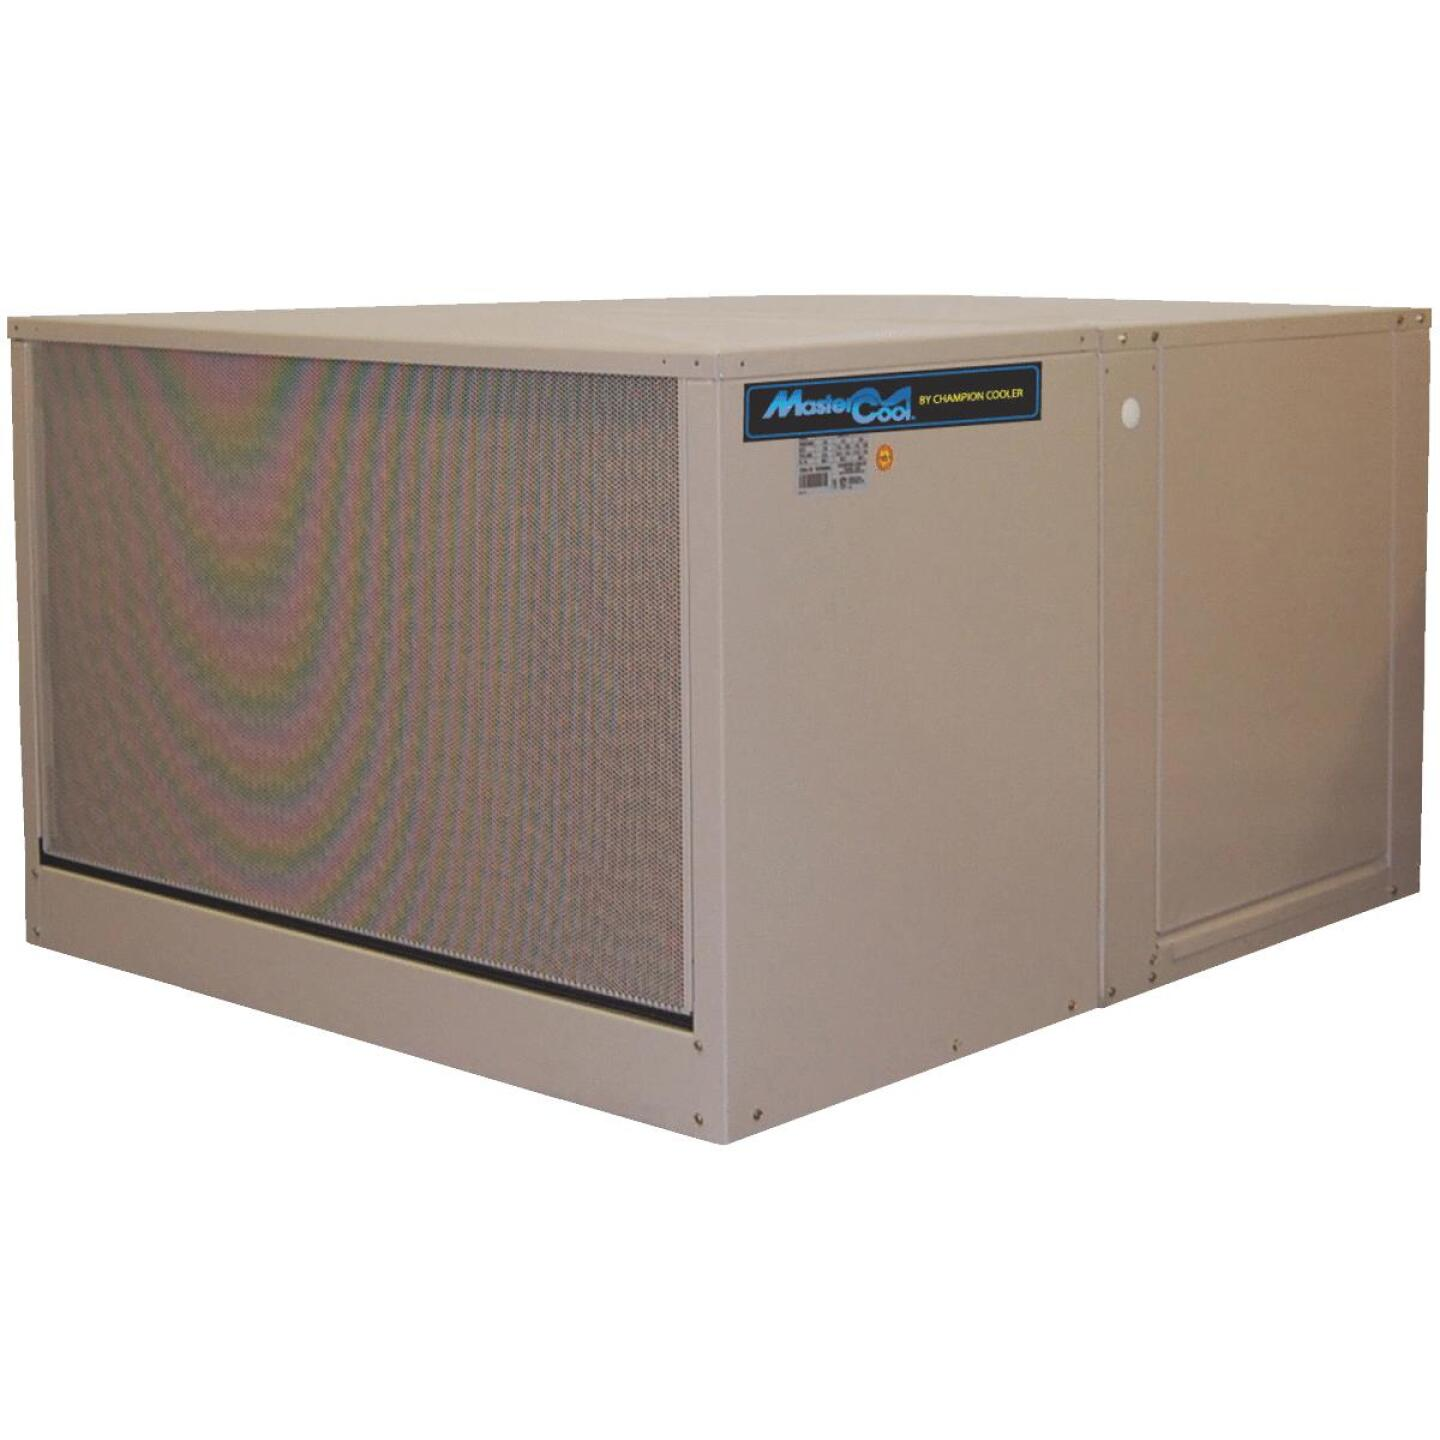 MasterCool 3212 to 7000 CFM Down Discharge Single Inlet Evaporative Cooler, 1700-2300 Sq. Ft. Image 1